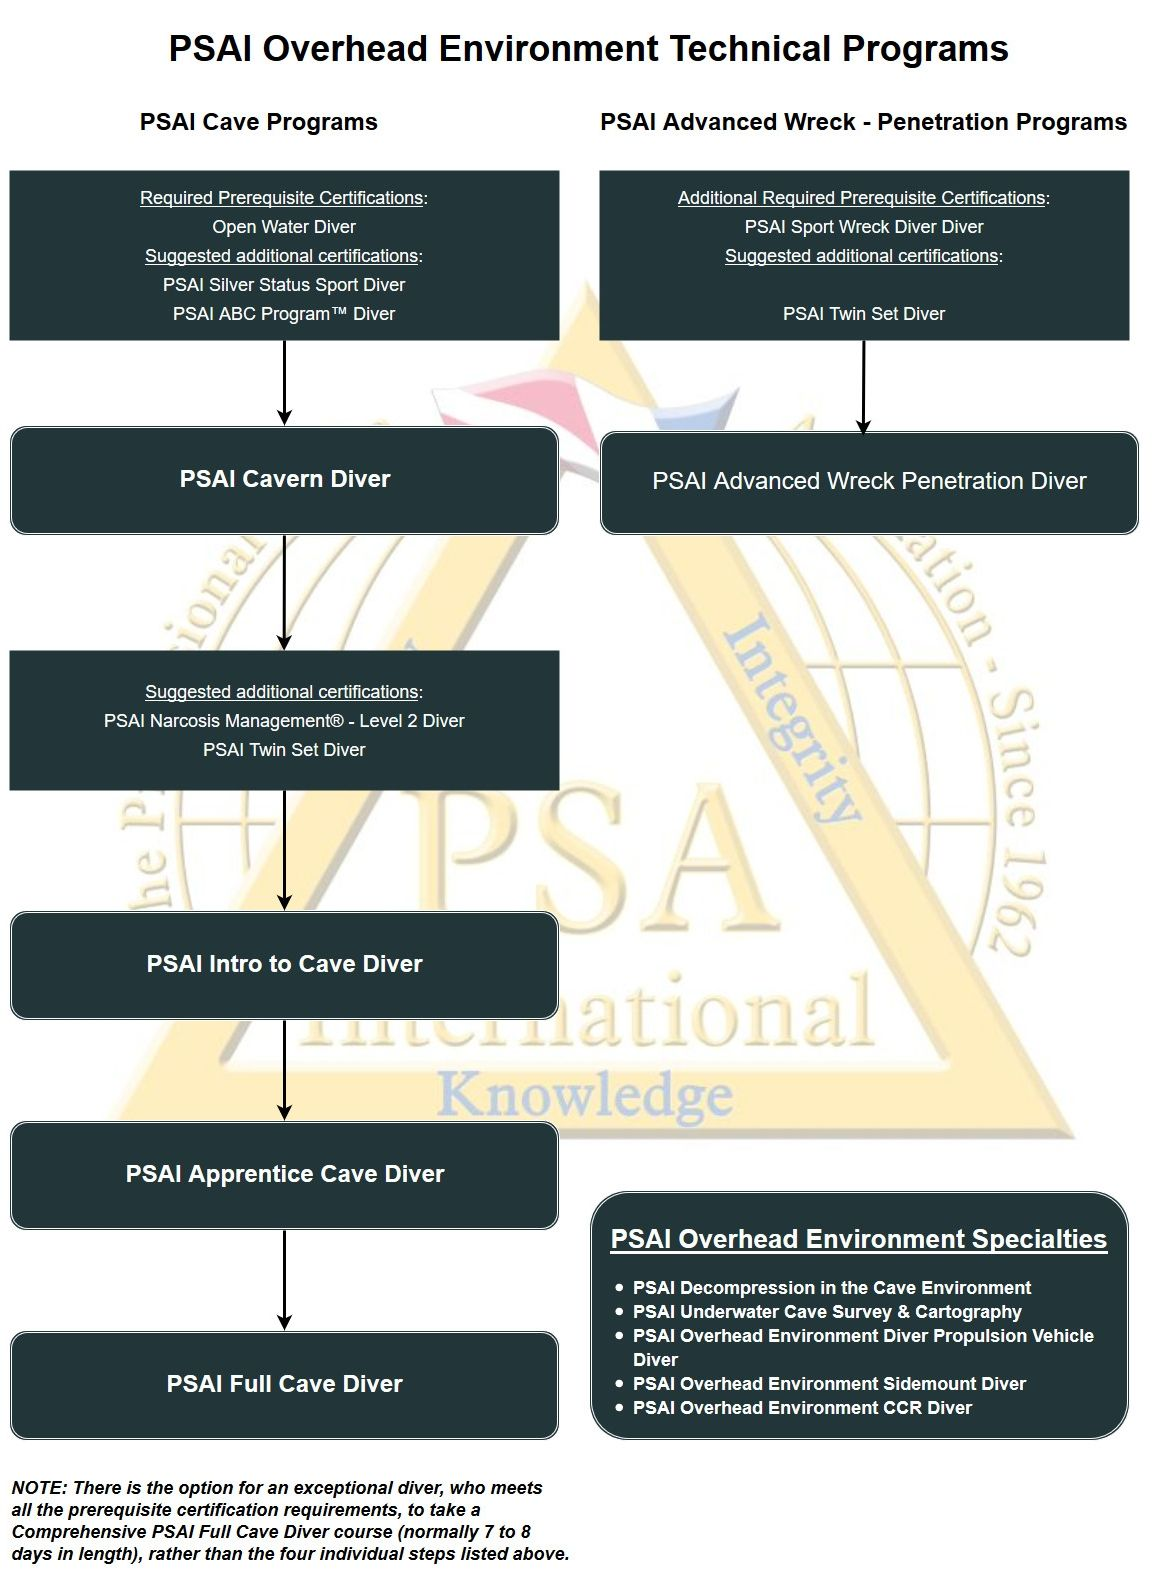 psai overhead environment technical programs flowchart